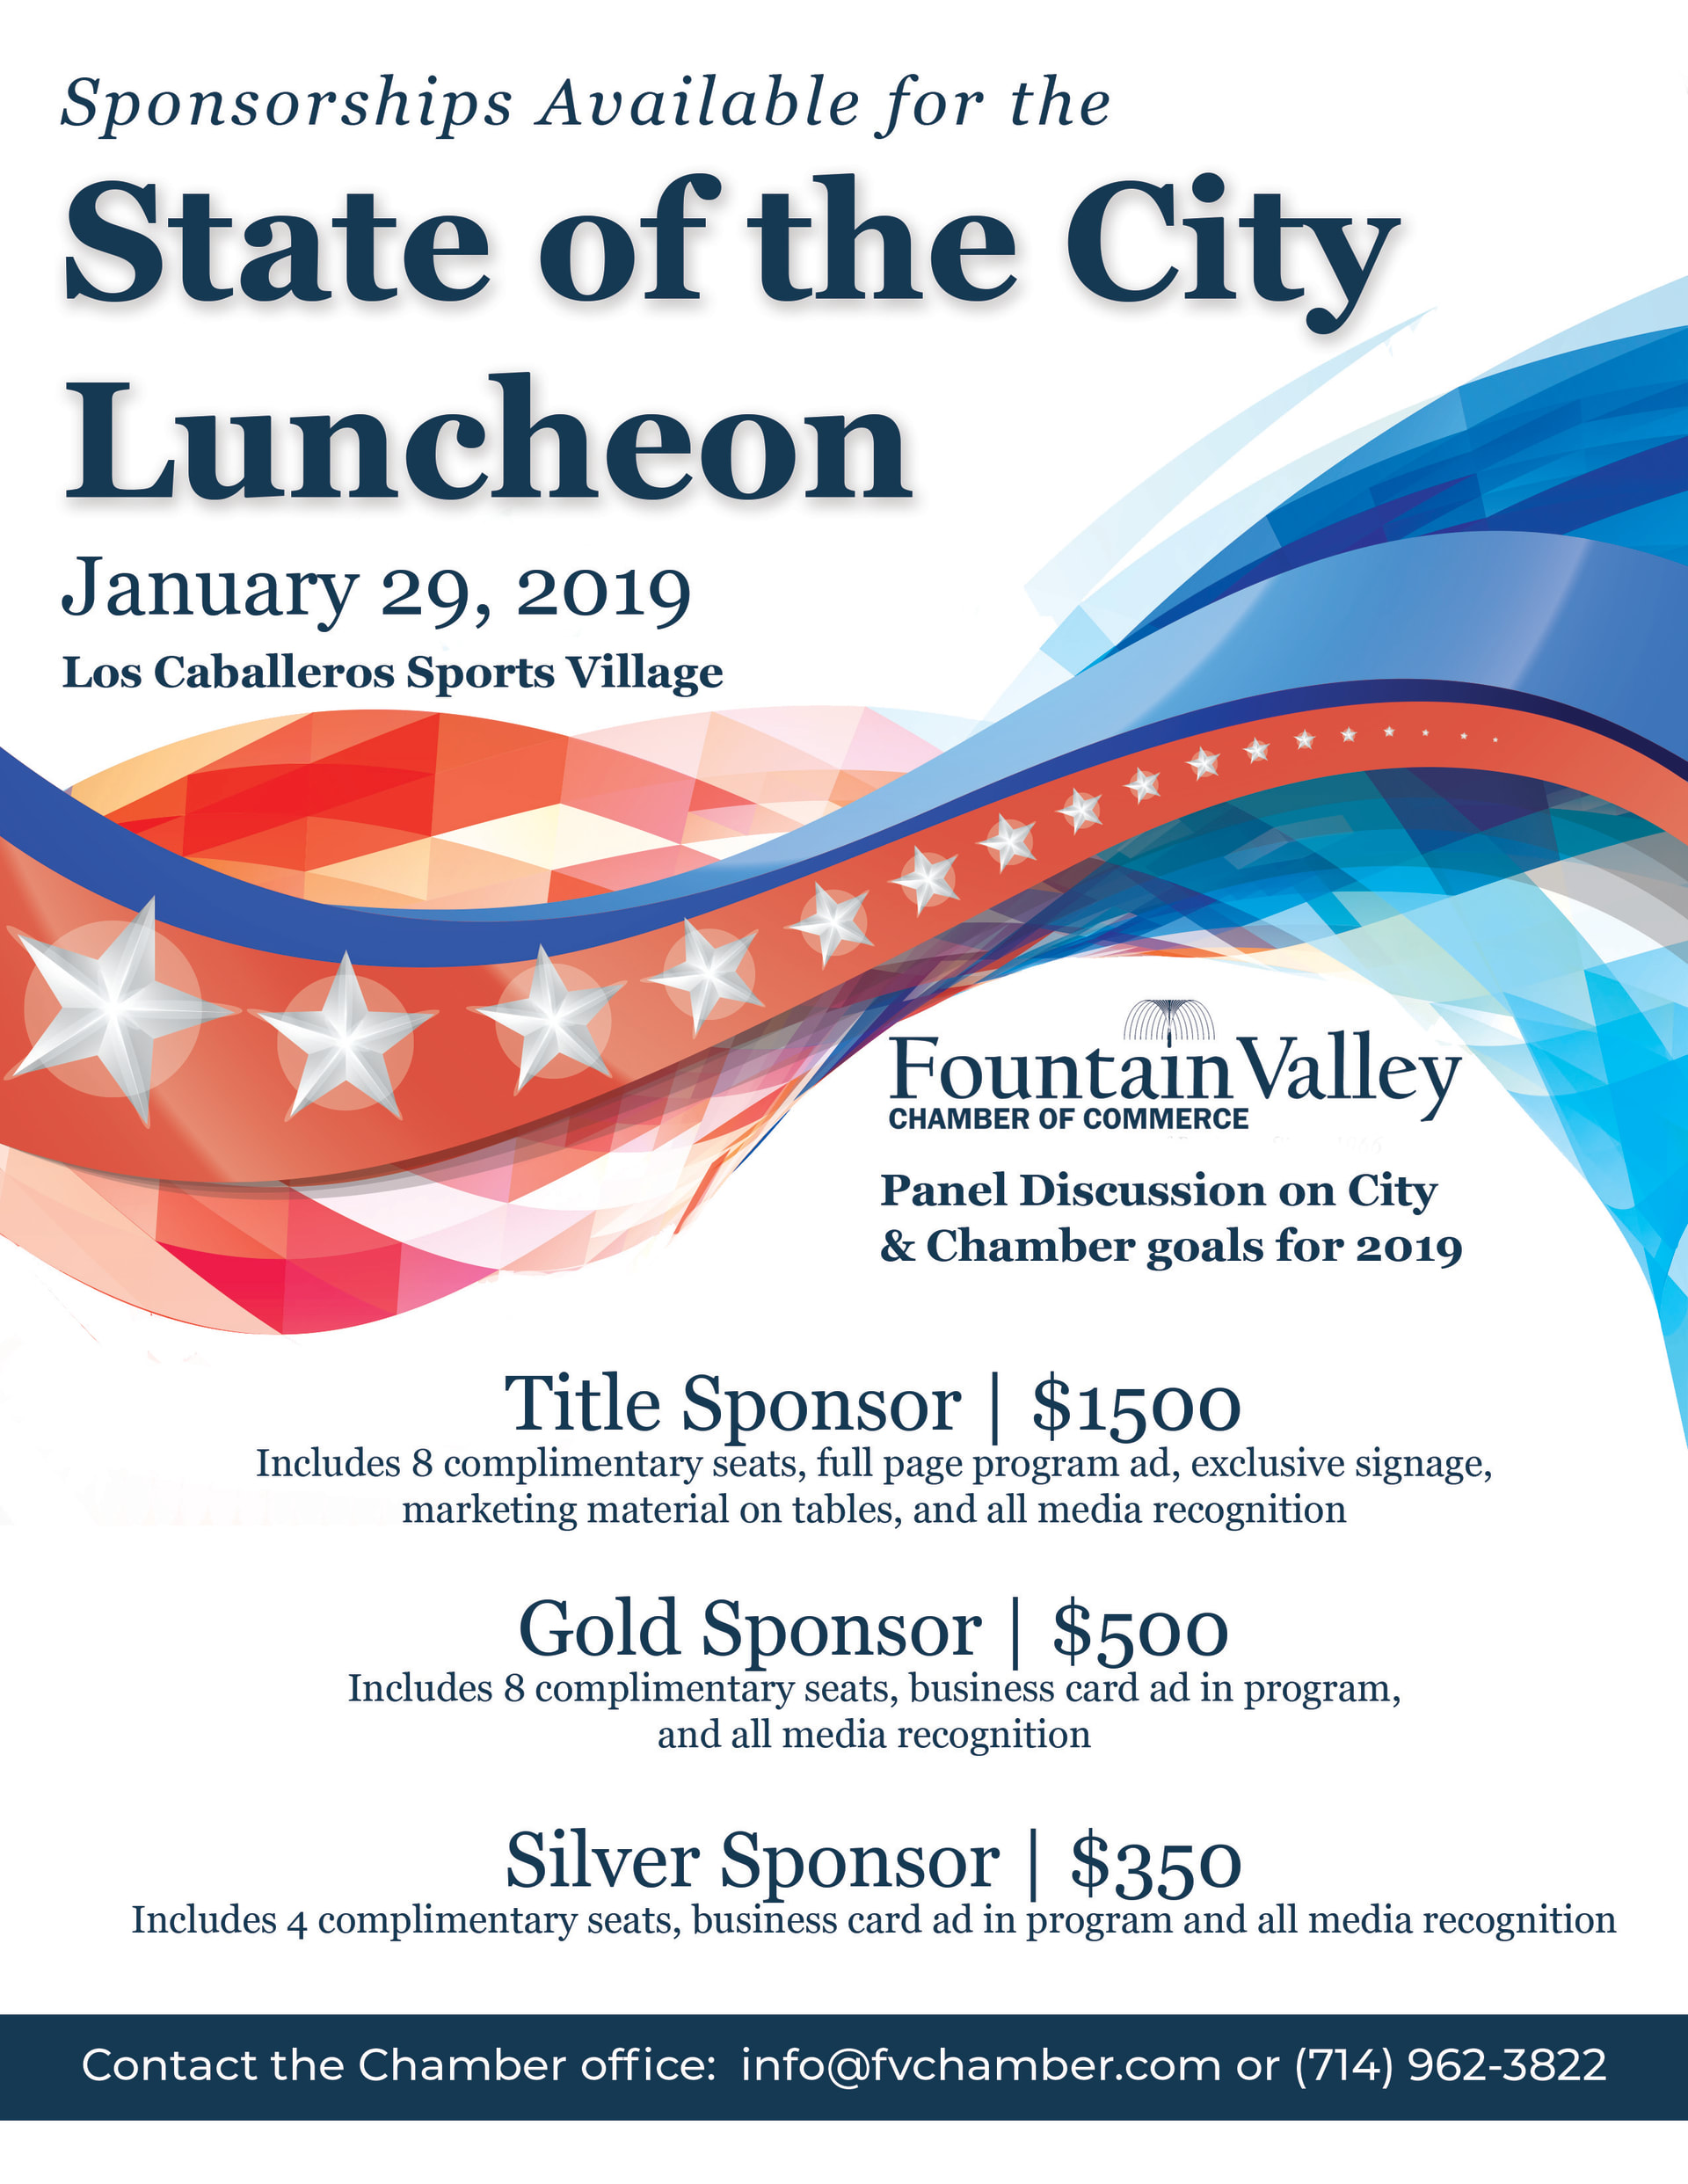 State of the City Luncheon